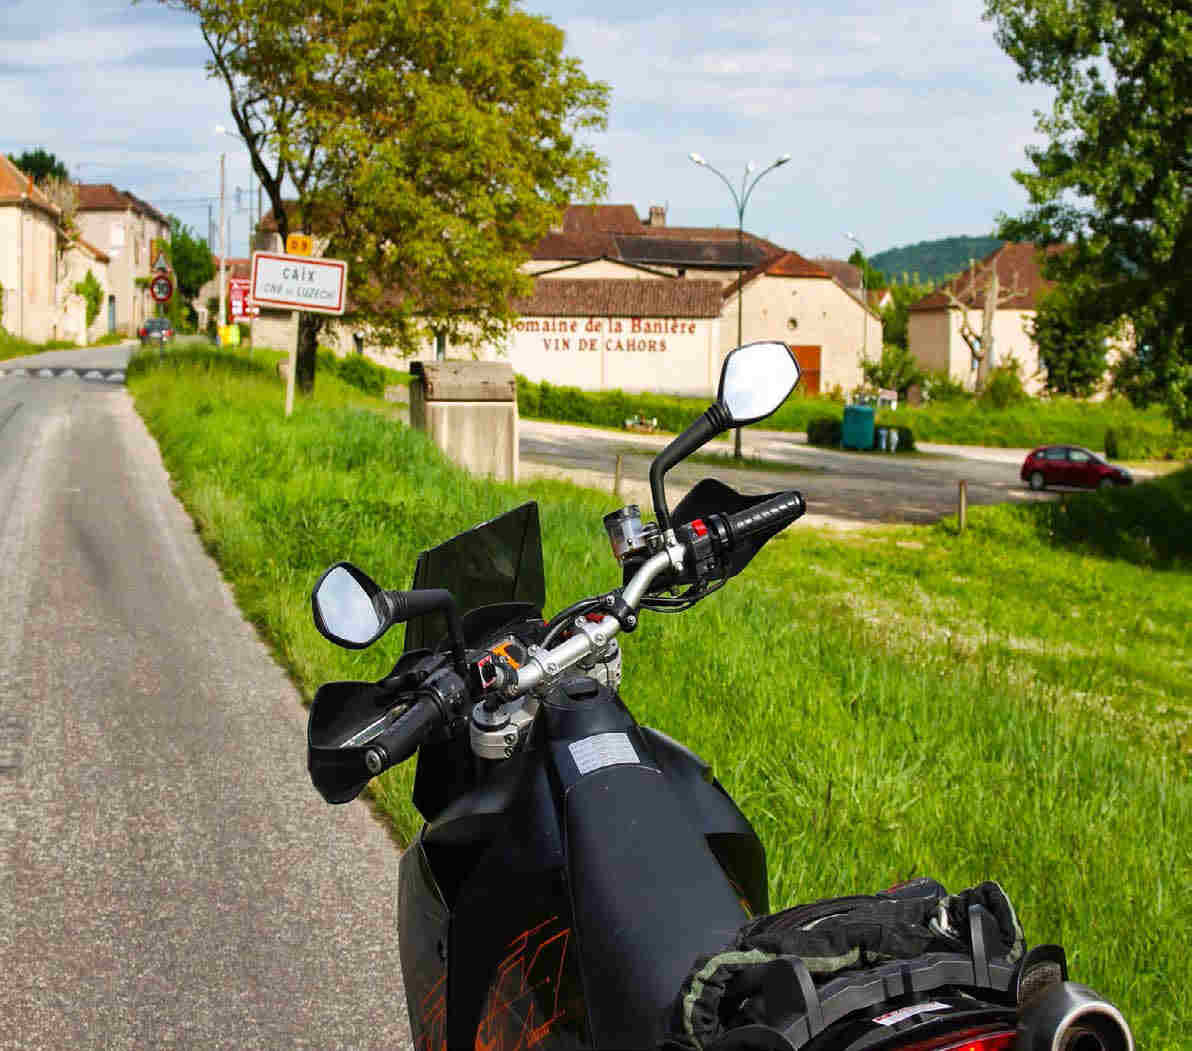 view over the handlebars of the parked KTM of the entrance to a small French village.